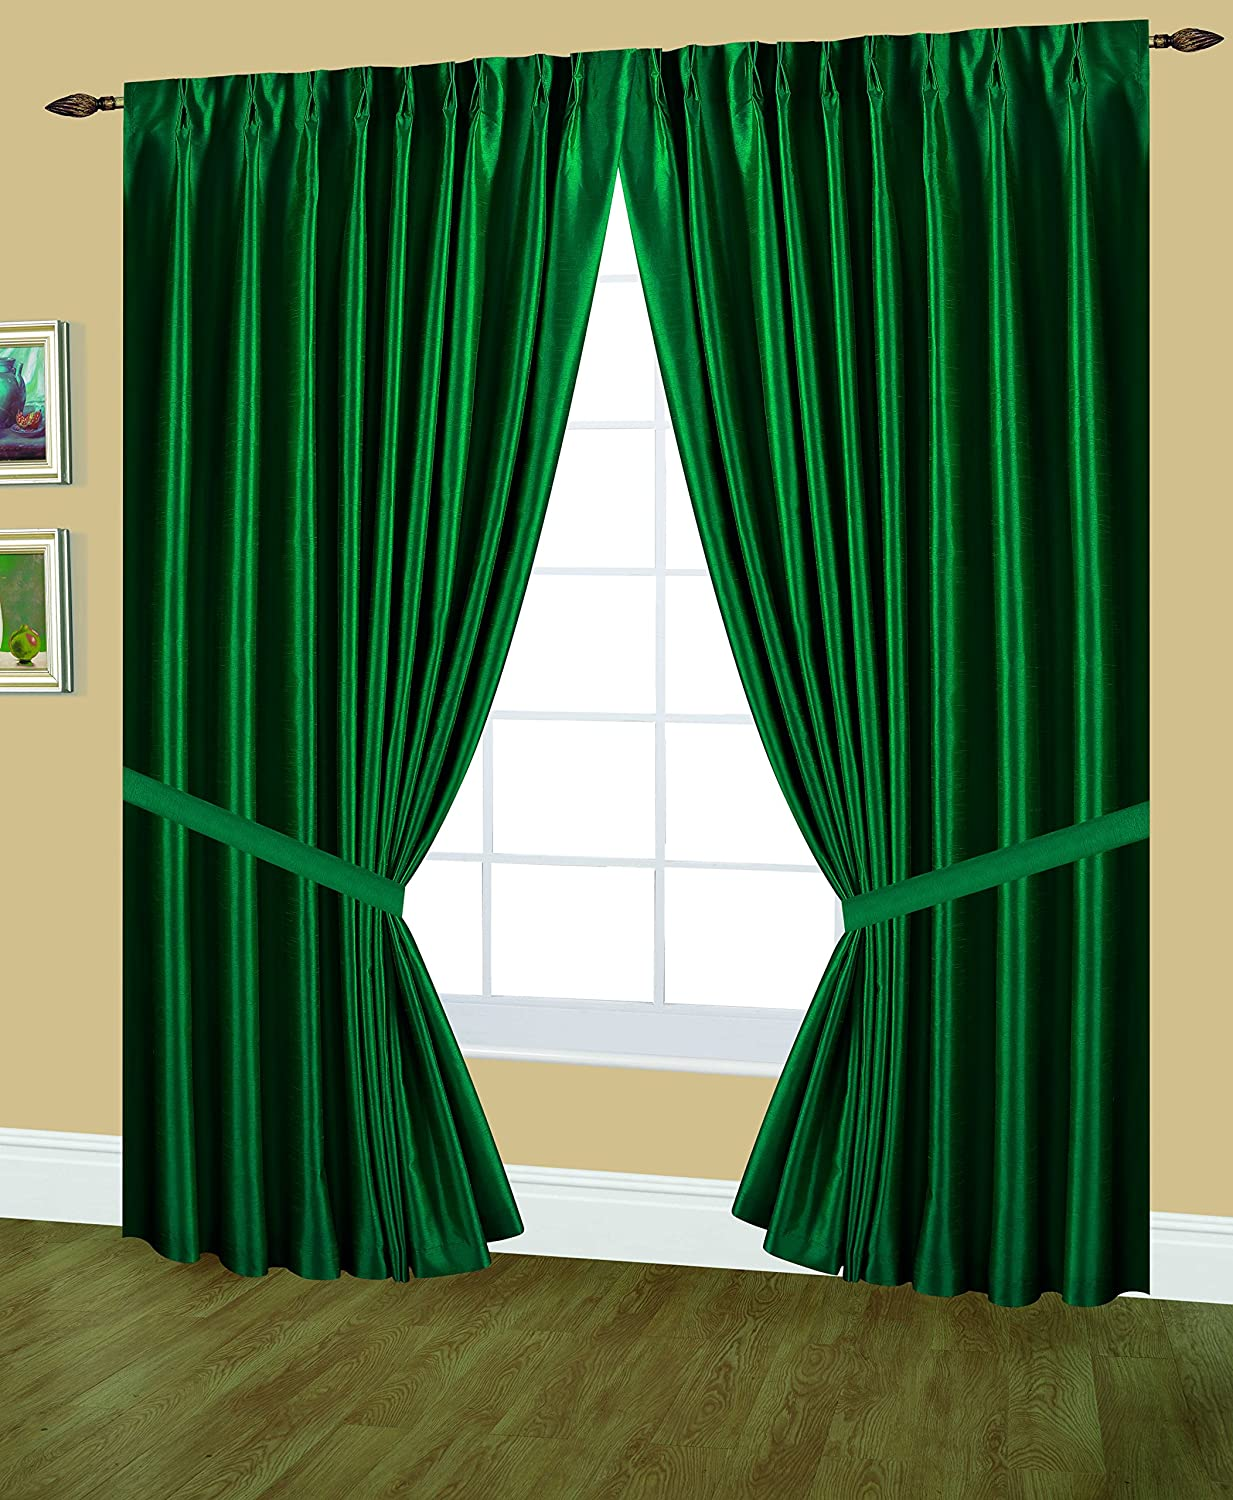 Editex Home Textiles Elaine Lined Pinch Pleated Window Curtain, 96 by 95-Inch, Evergreen